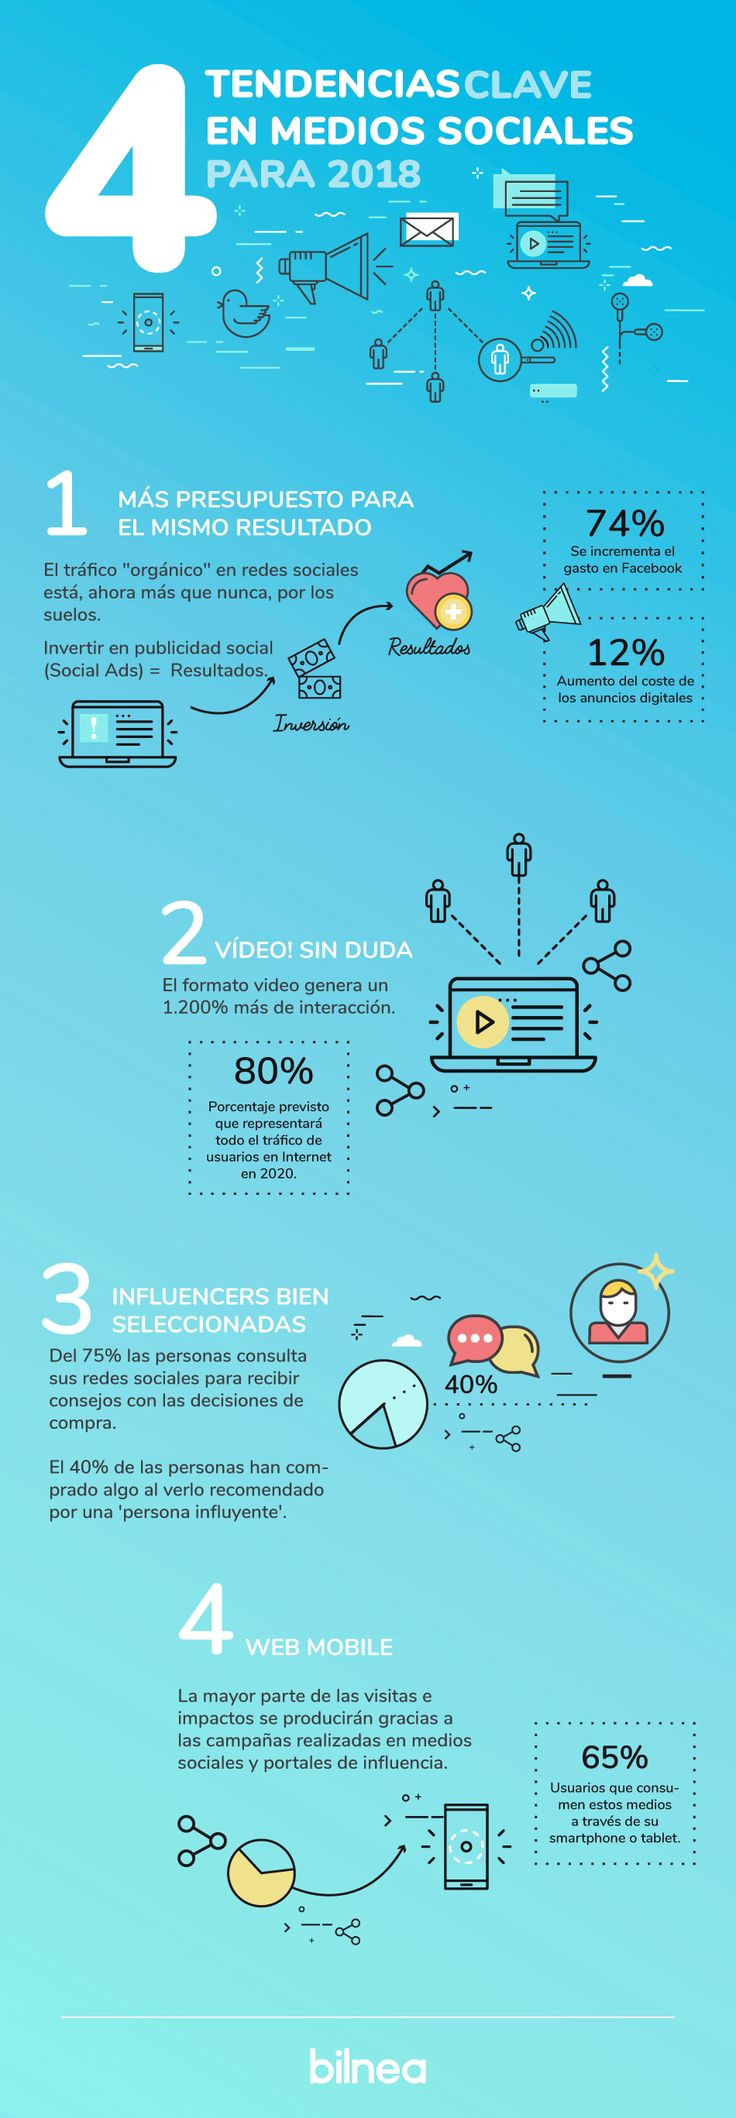 Infografía con 4 tendencias en medios sociales para 2018. #SocialMedia #Marketing